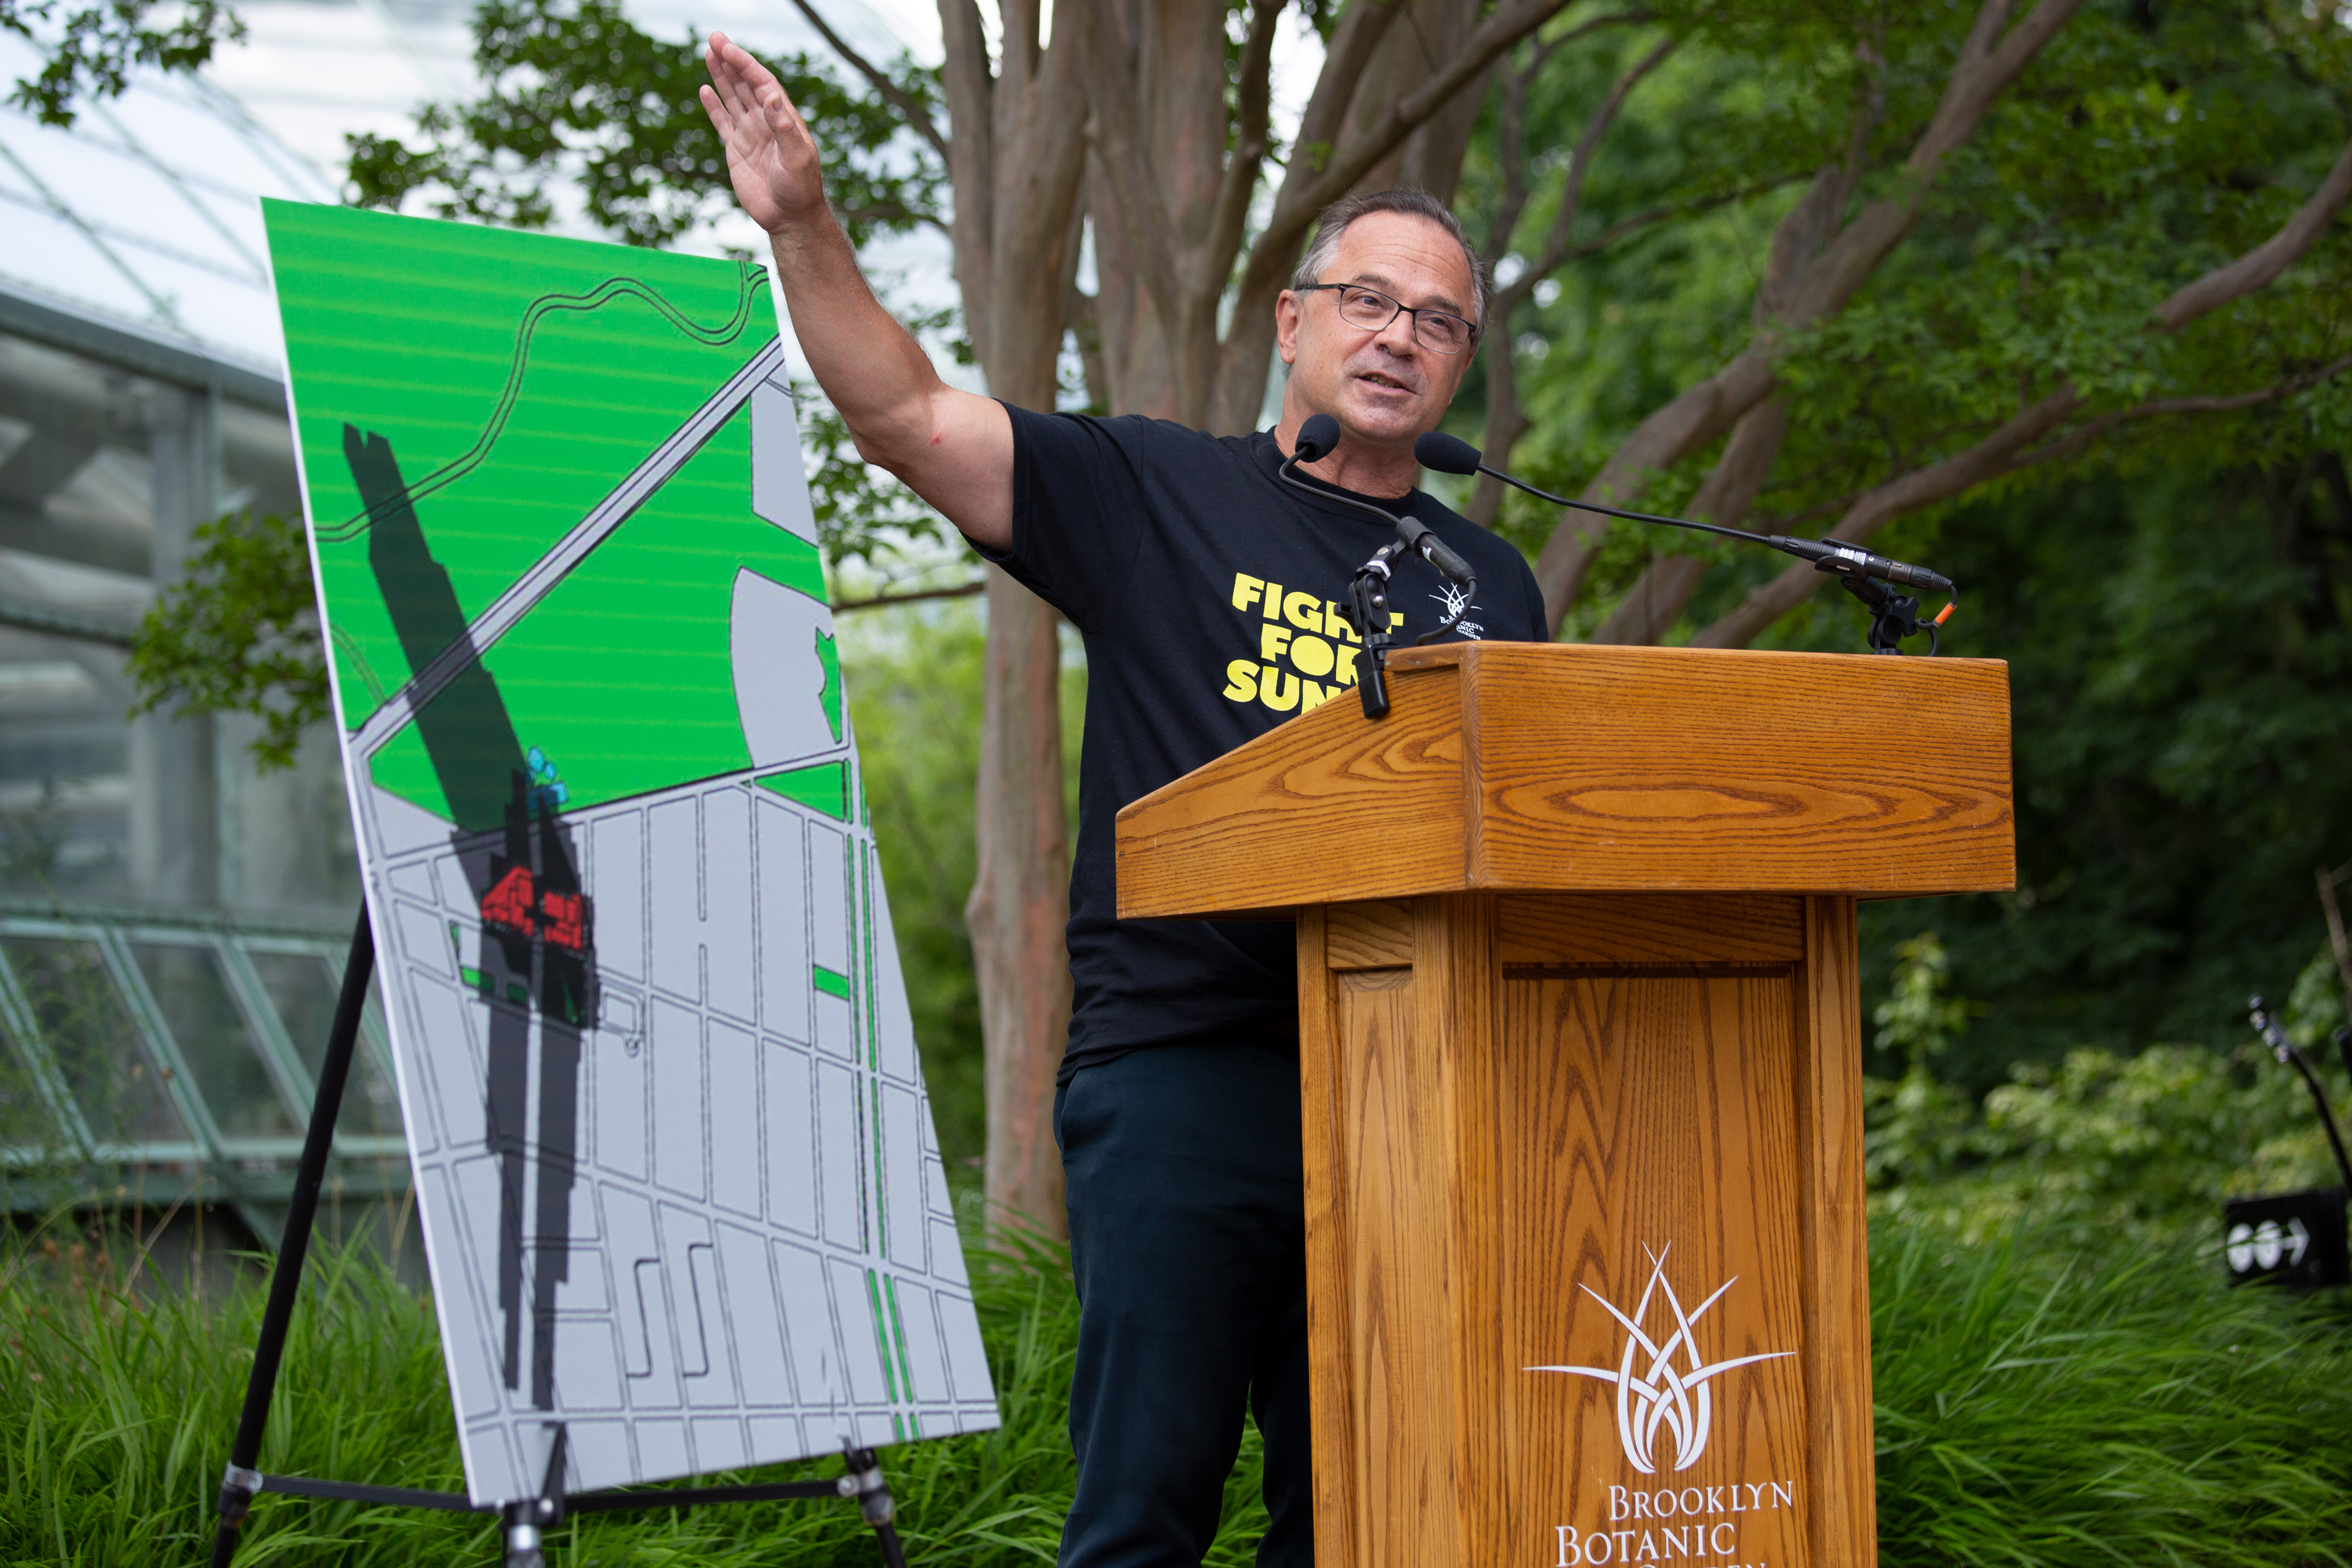 Brooklyn Botanic Garden President Adrian Benepe speaks about a proposed development he says would block vital sunlight for plants, July 28, 2021.